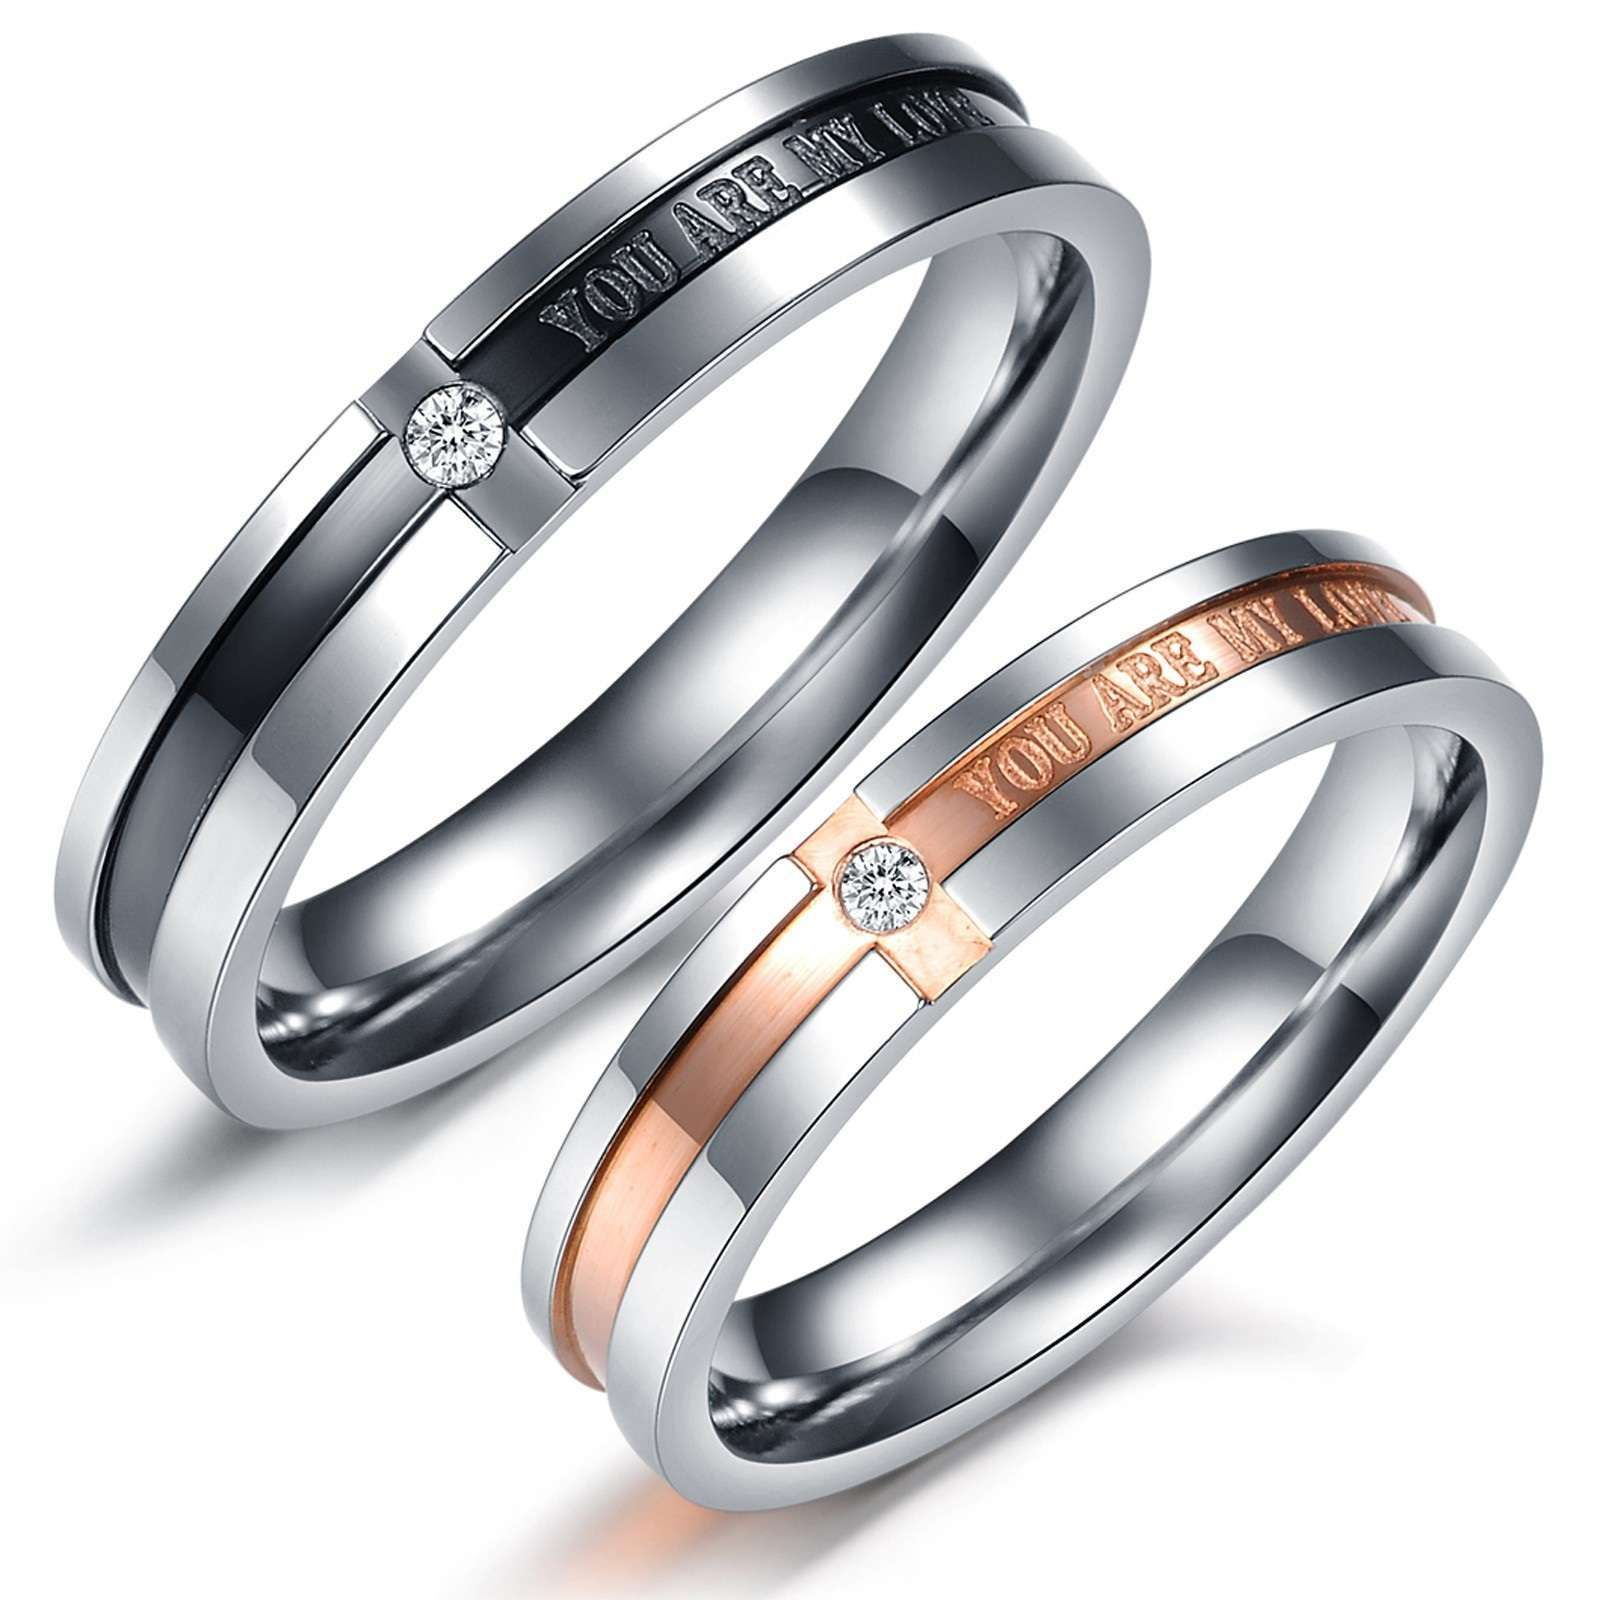 Wedding Rings Cheap Bridal Sets 1080p HD Pictures Wedding Pictures